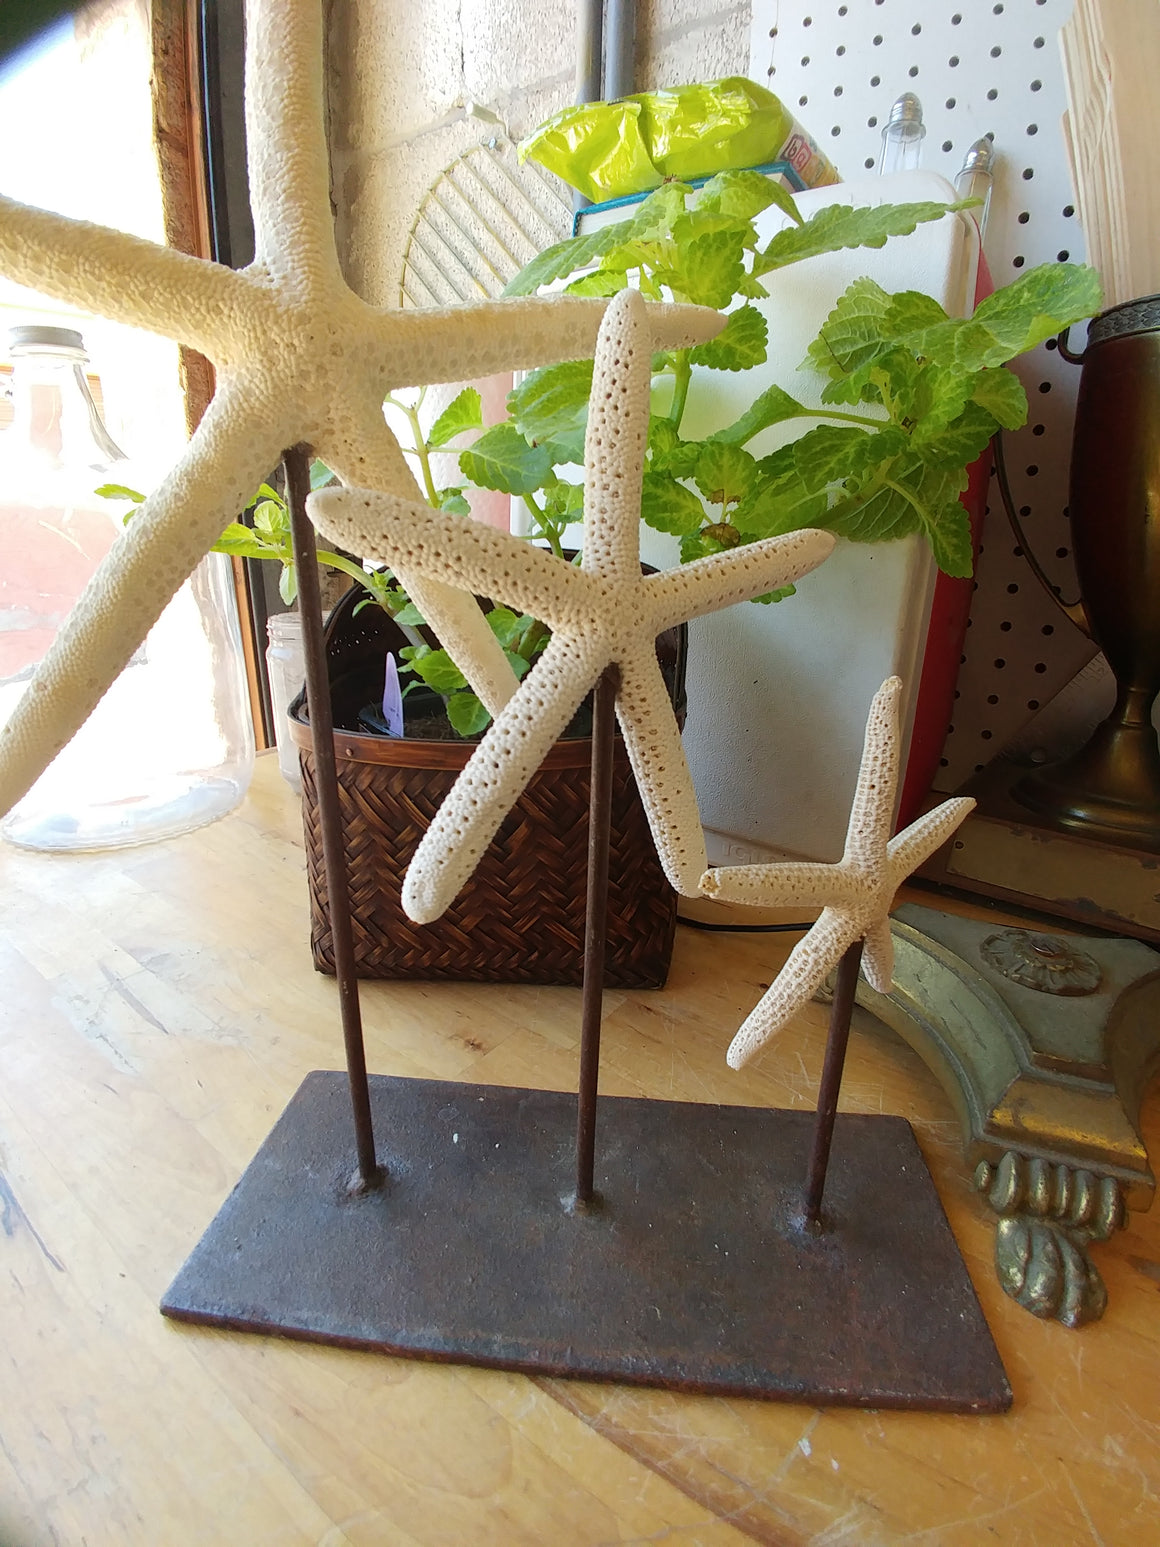 3 starfish on base - VINTAGE JOURNEY MARKET - Upcycling & Restoration